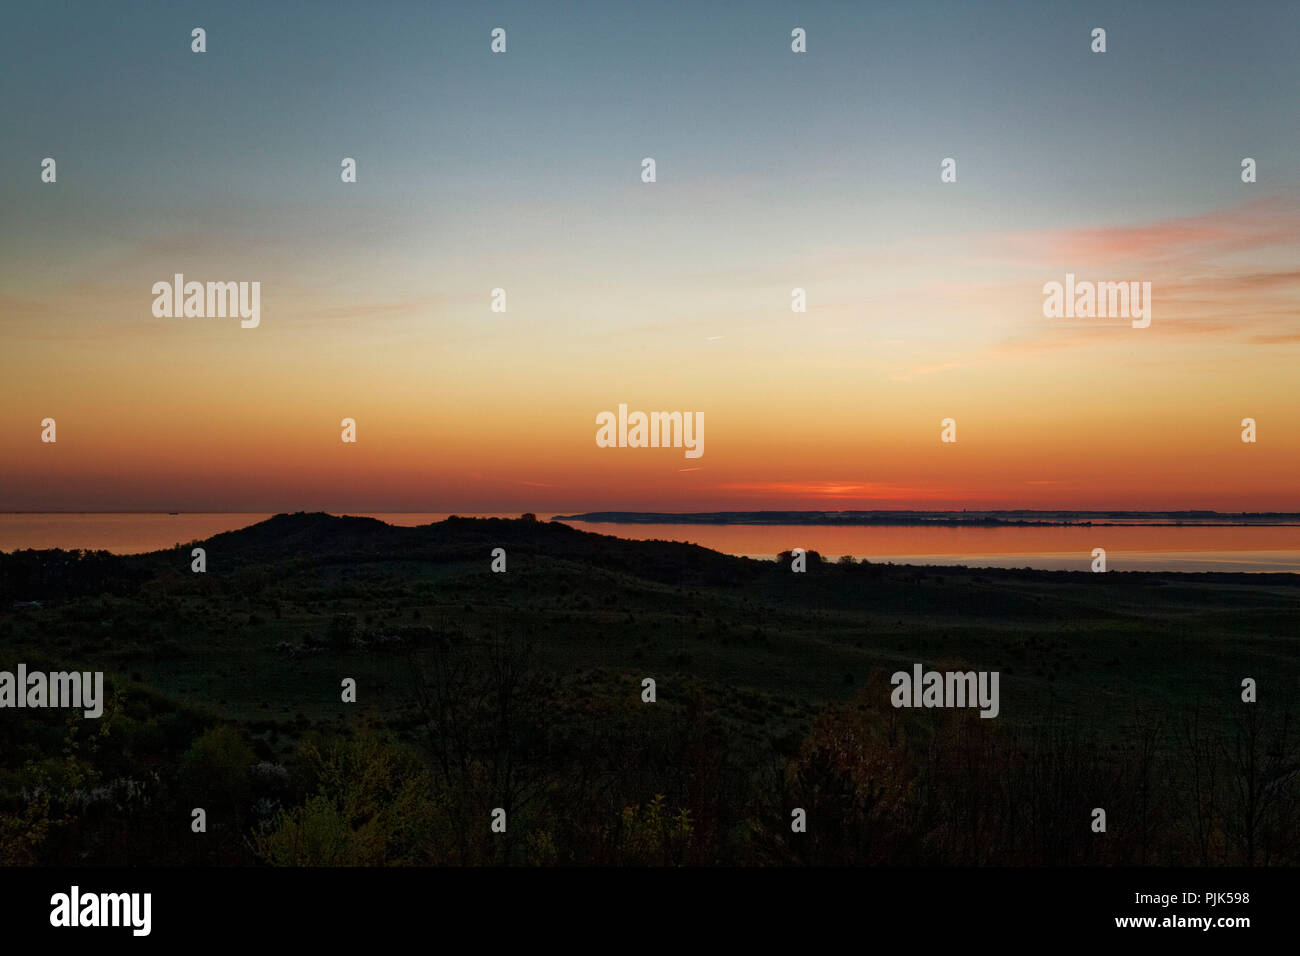 Sunrise over the Baltic Sea and the Bodden, seen from the island Hiddensee, Western Pomerania Lagoon Area National Park Stock Photo